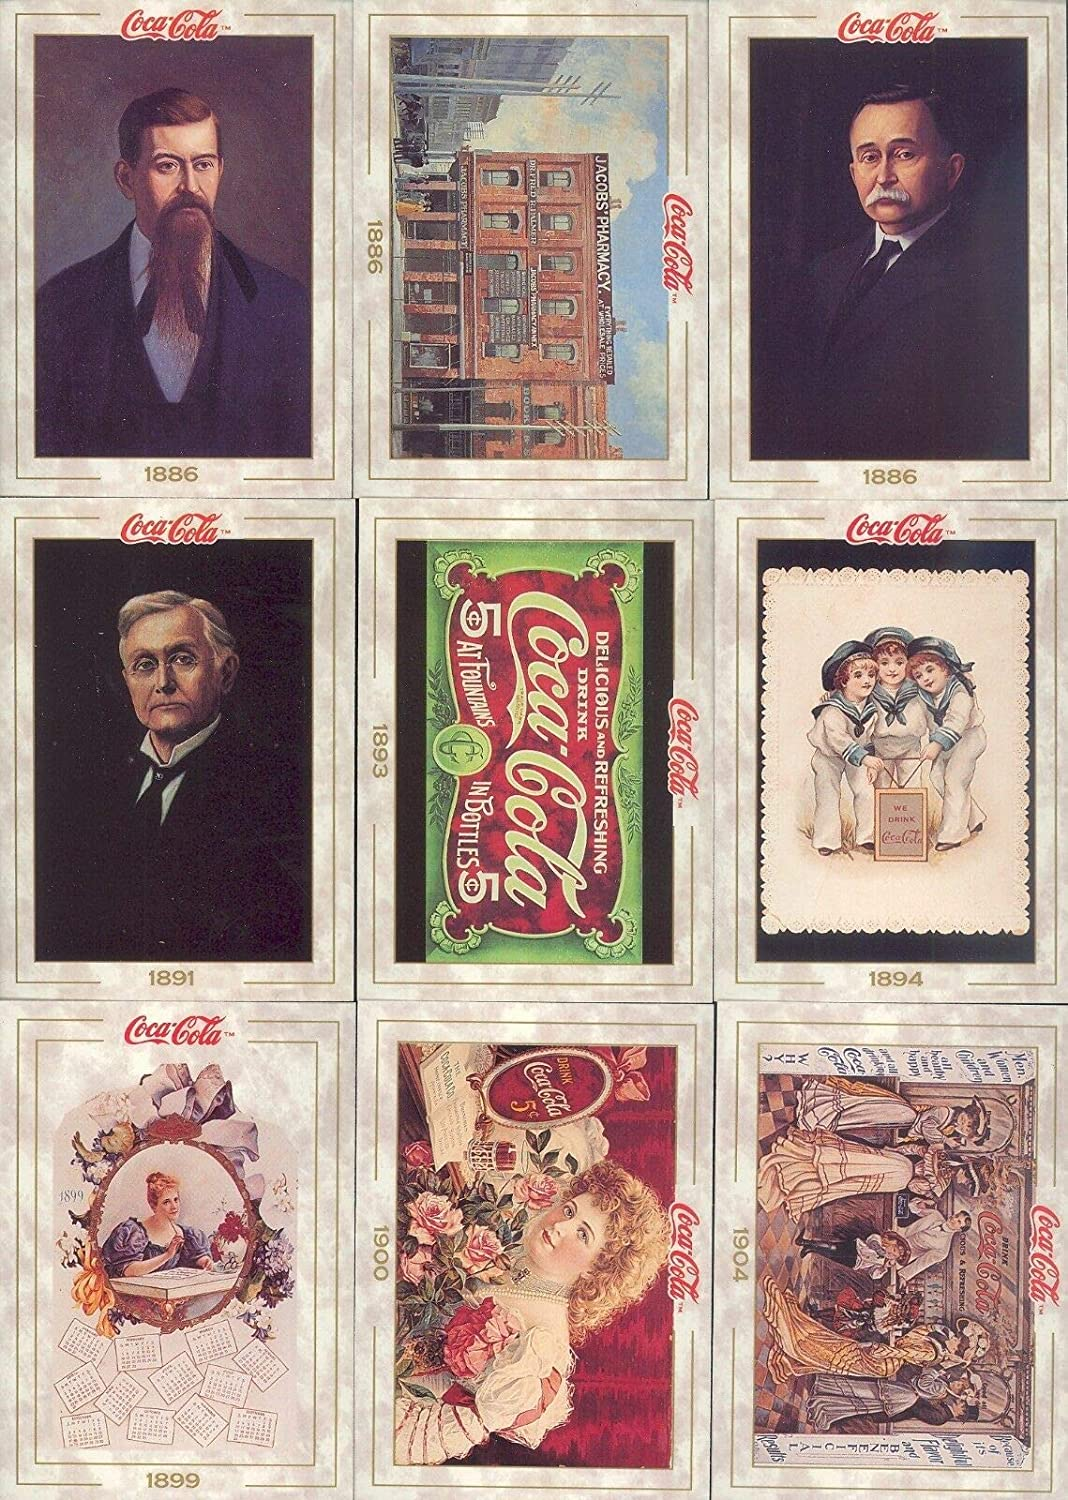 Collect-A-Card COCA COLA Series 1+2 1993 to 1994 Single Cards #1 to 200